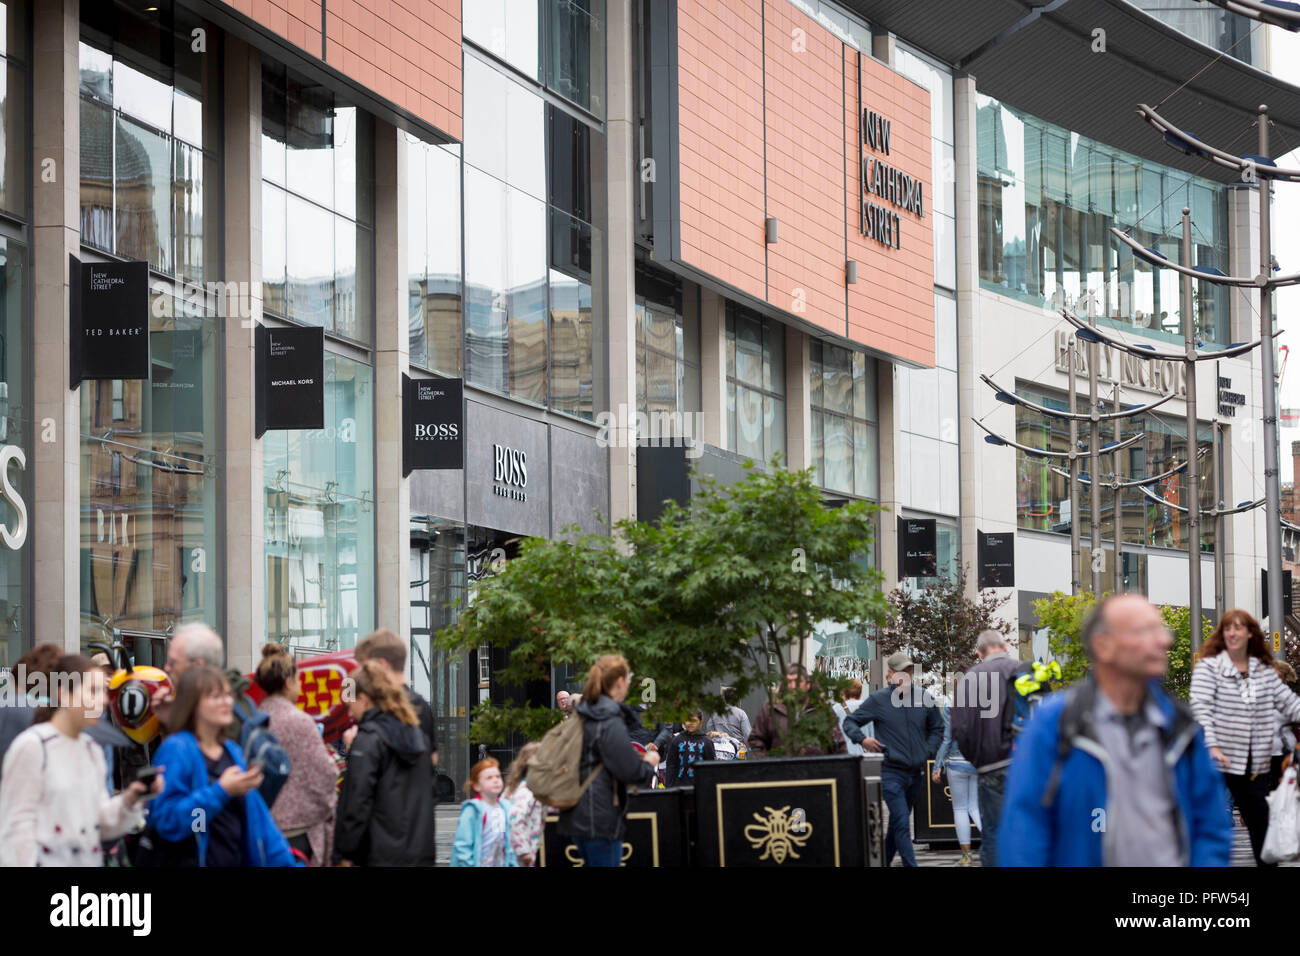 General view of New Cathedral Street in Manchester city centre , England - Stock Image